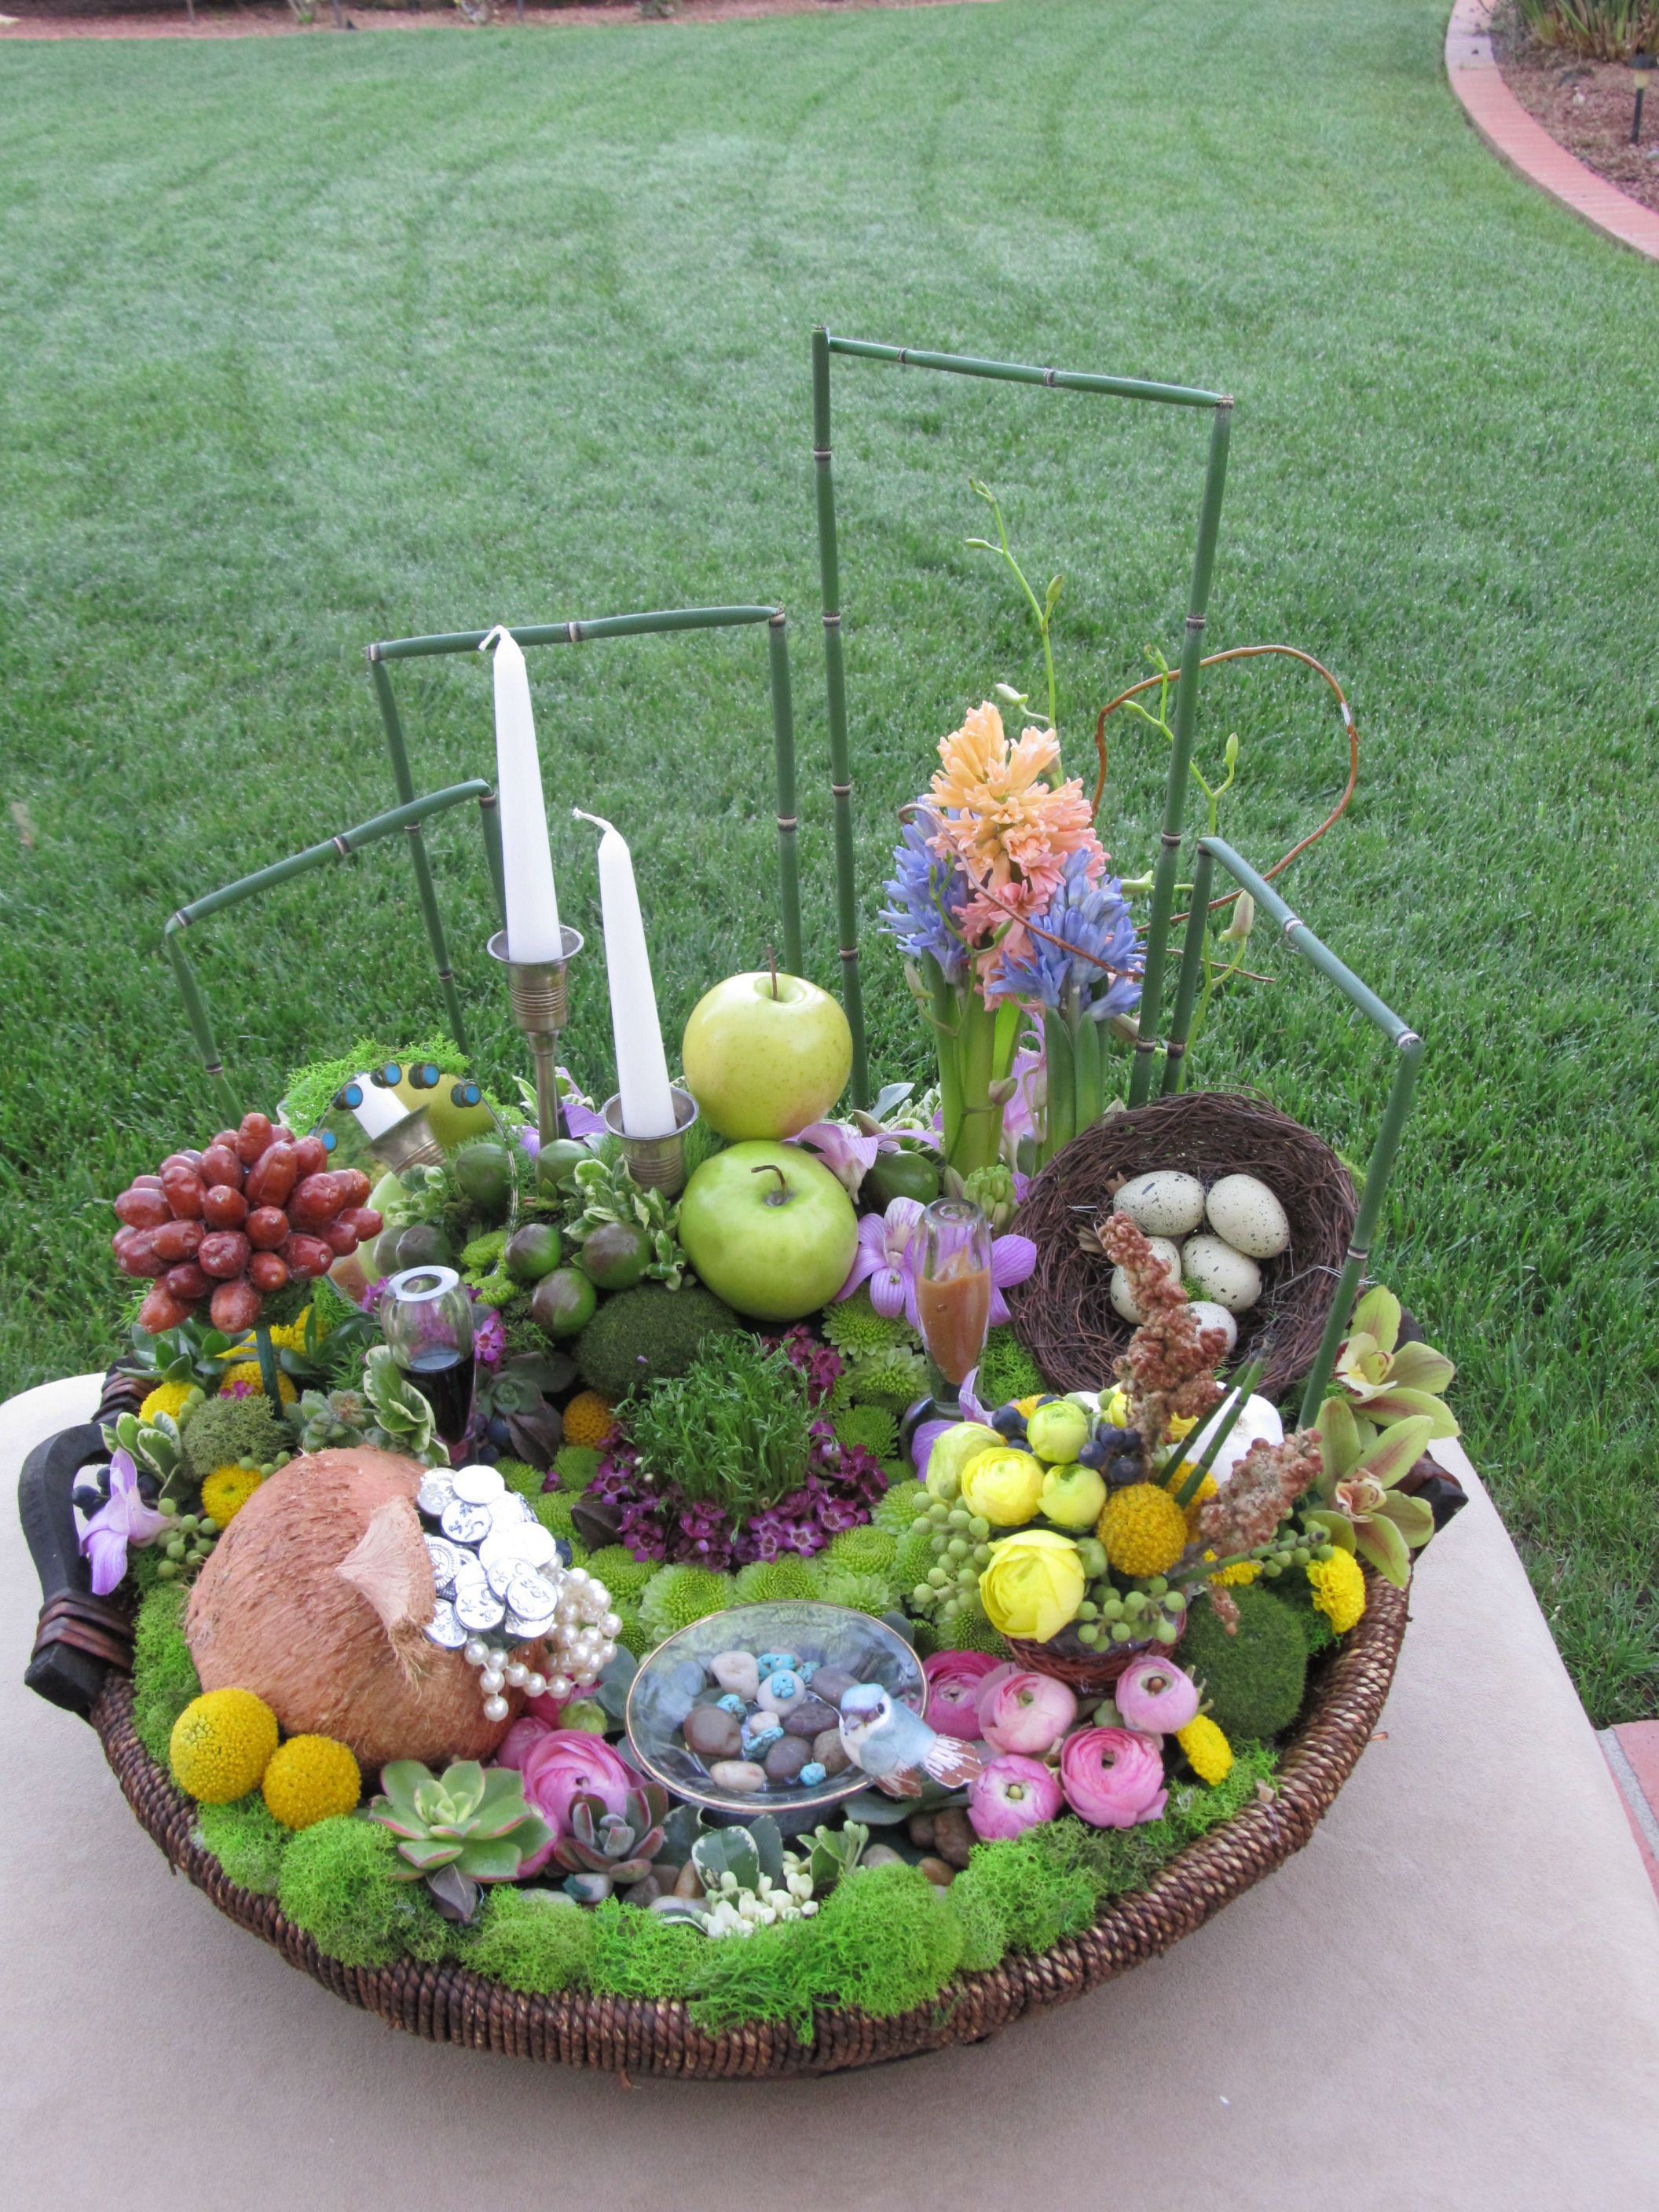 Persian New Year Arrangement In The Basket Spring Flowers With